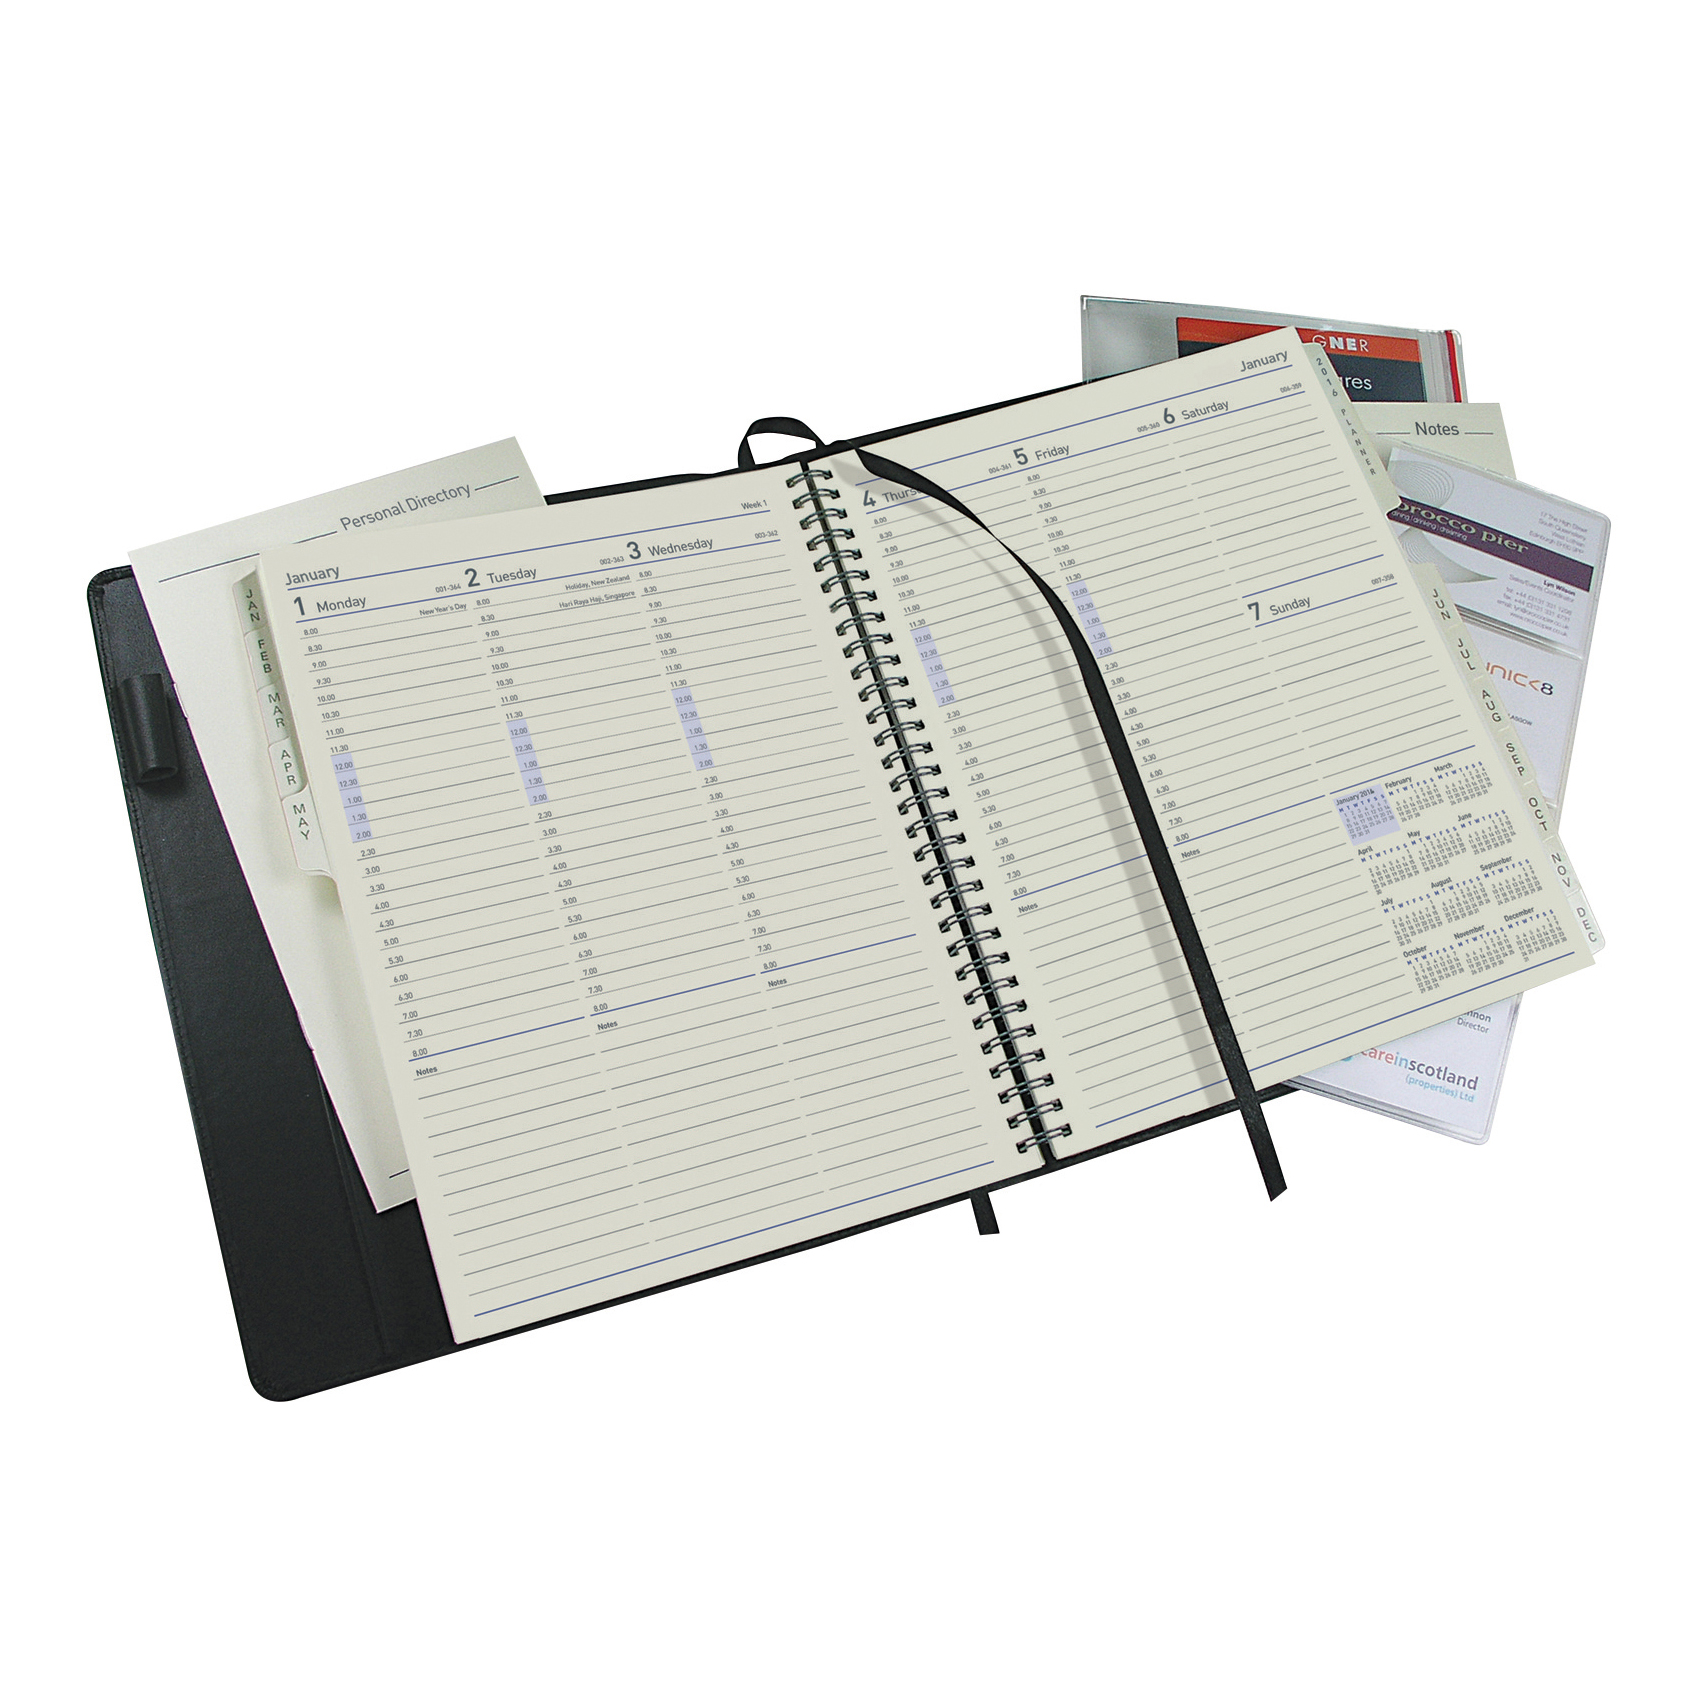 Collins 2020 Elite Manager Diary Week to View Wirobound 190x260mm Black Ref 1190V 2020